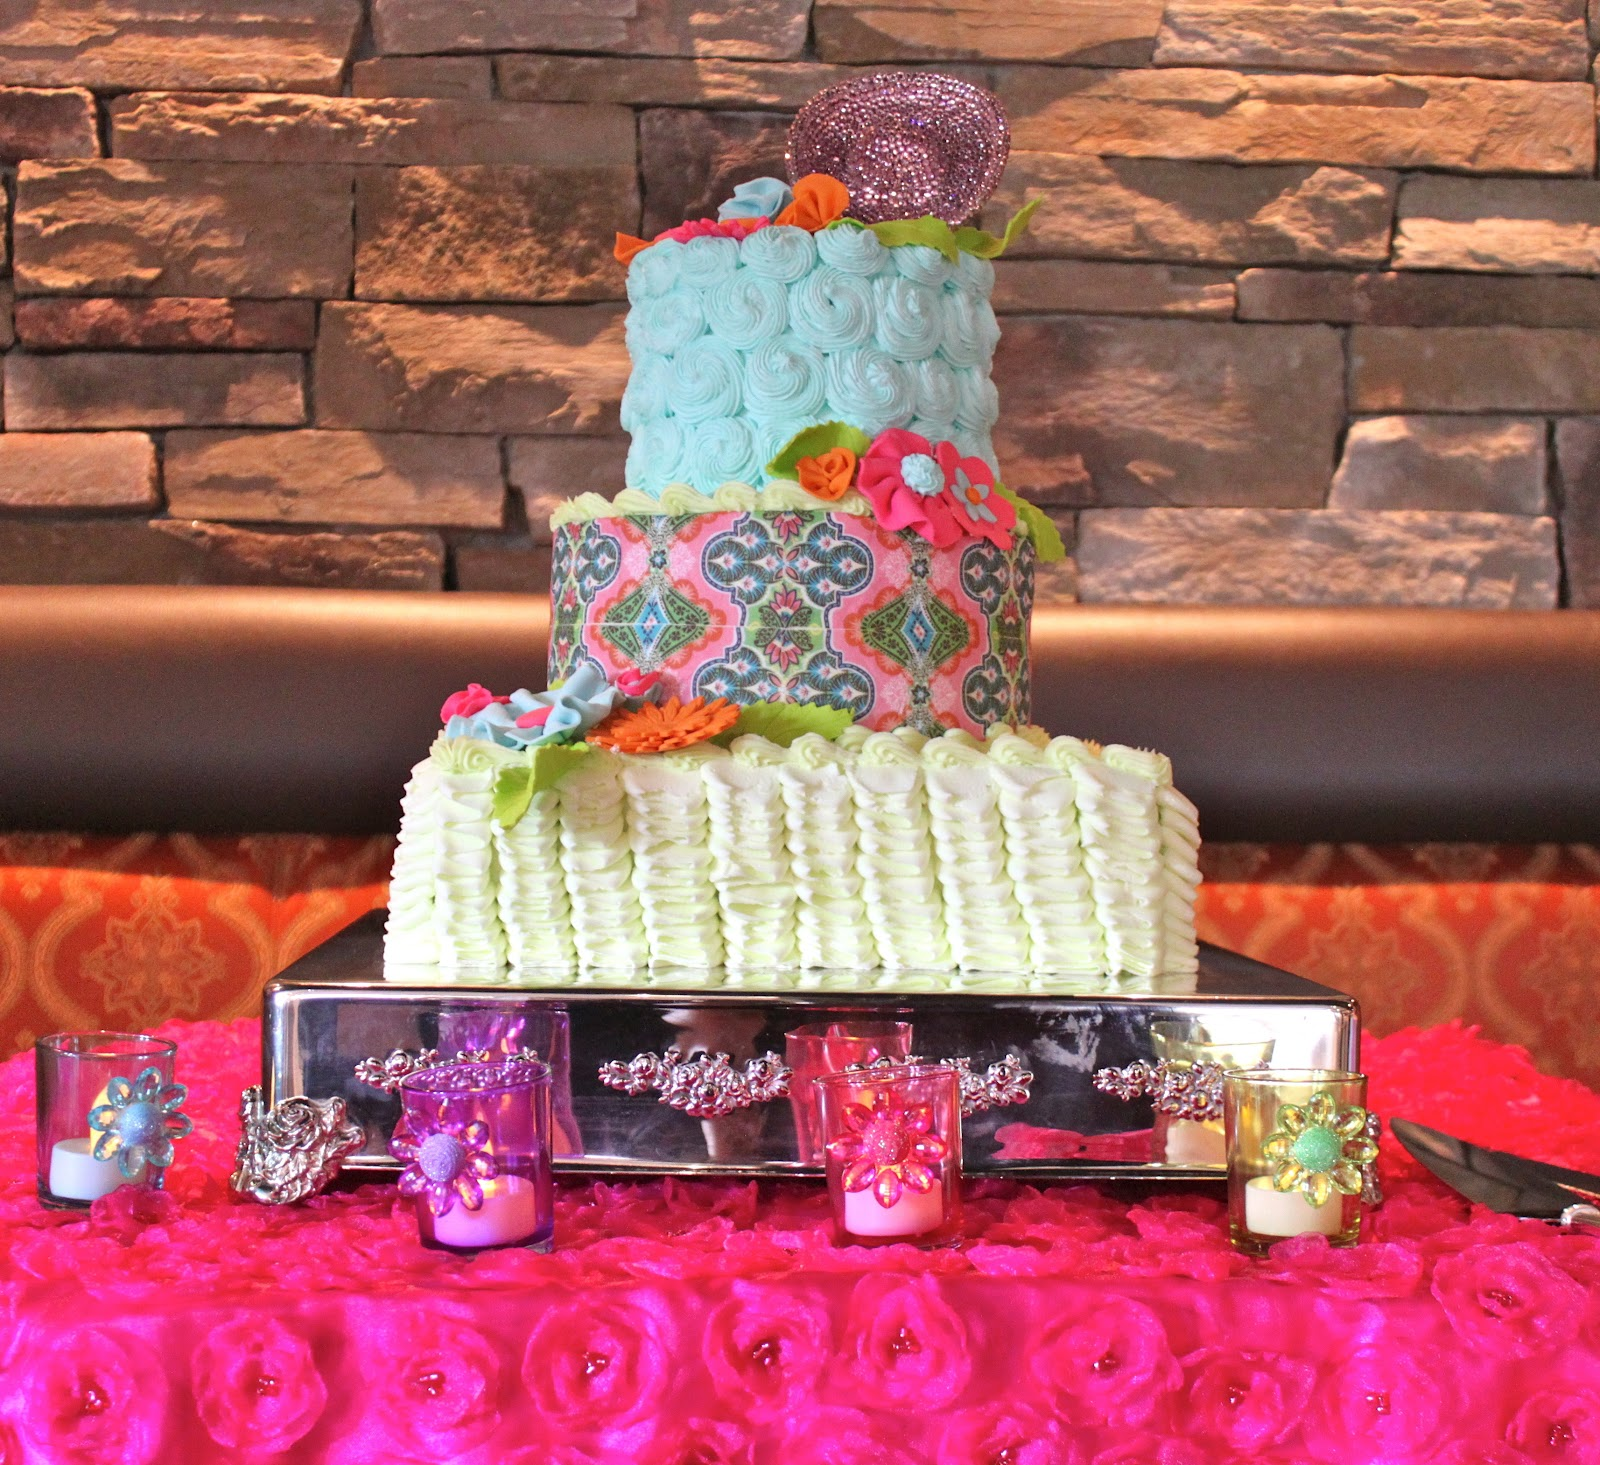 My mexico themed wedding cake princess approved a place for sharing cakes by lilly located in hebron ct solutioingenieria Image collections